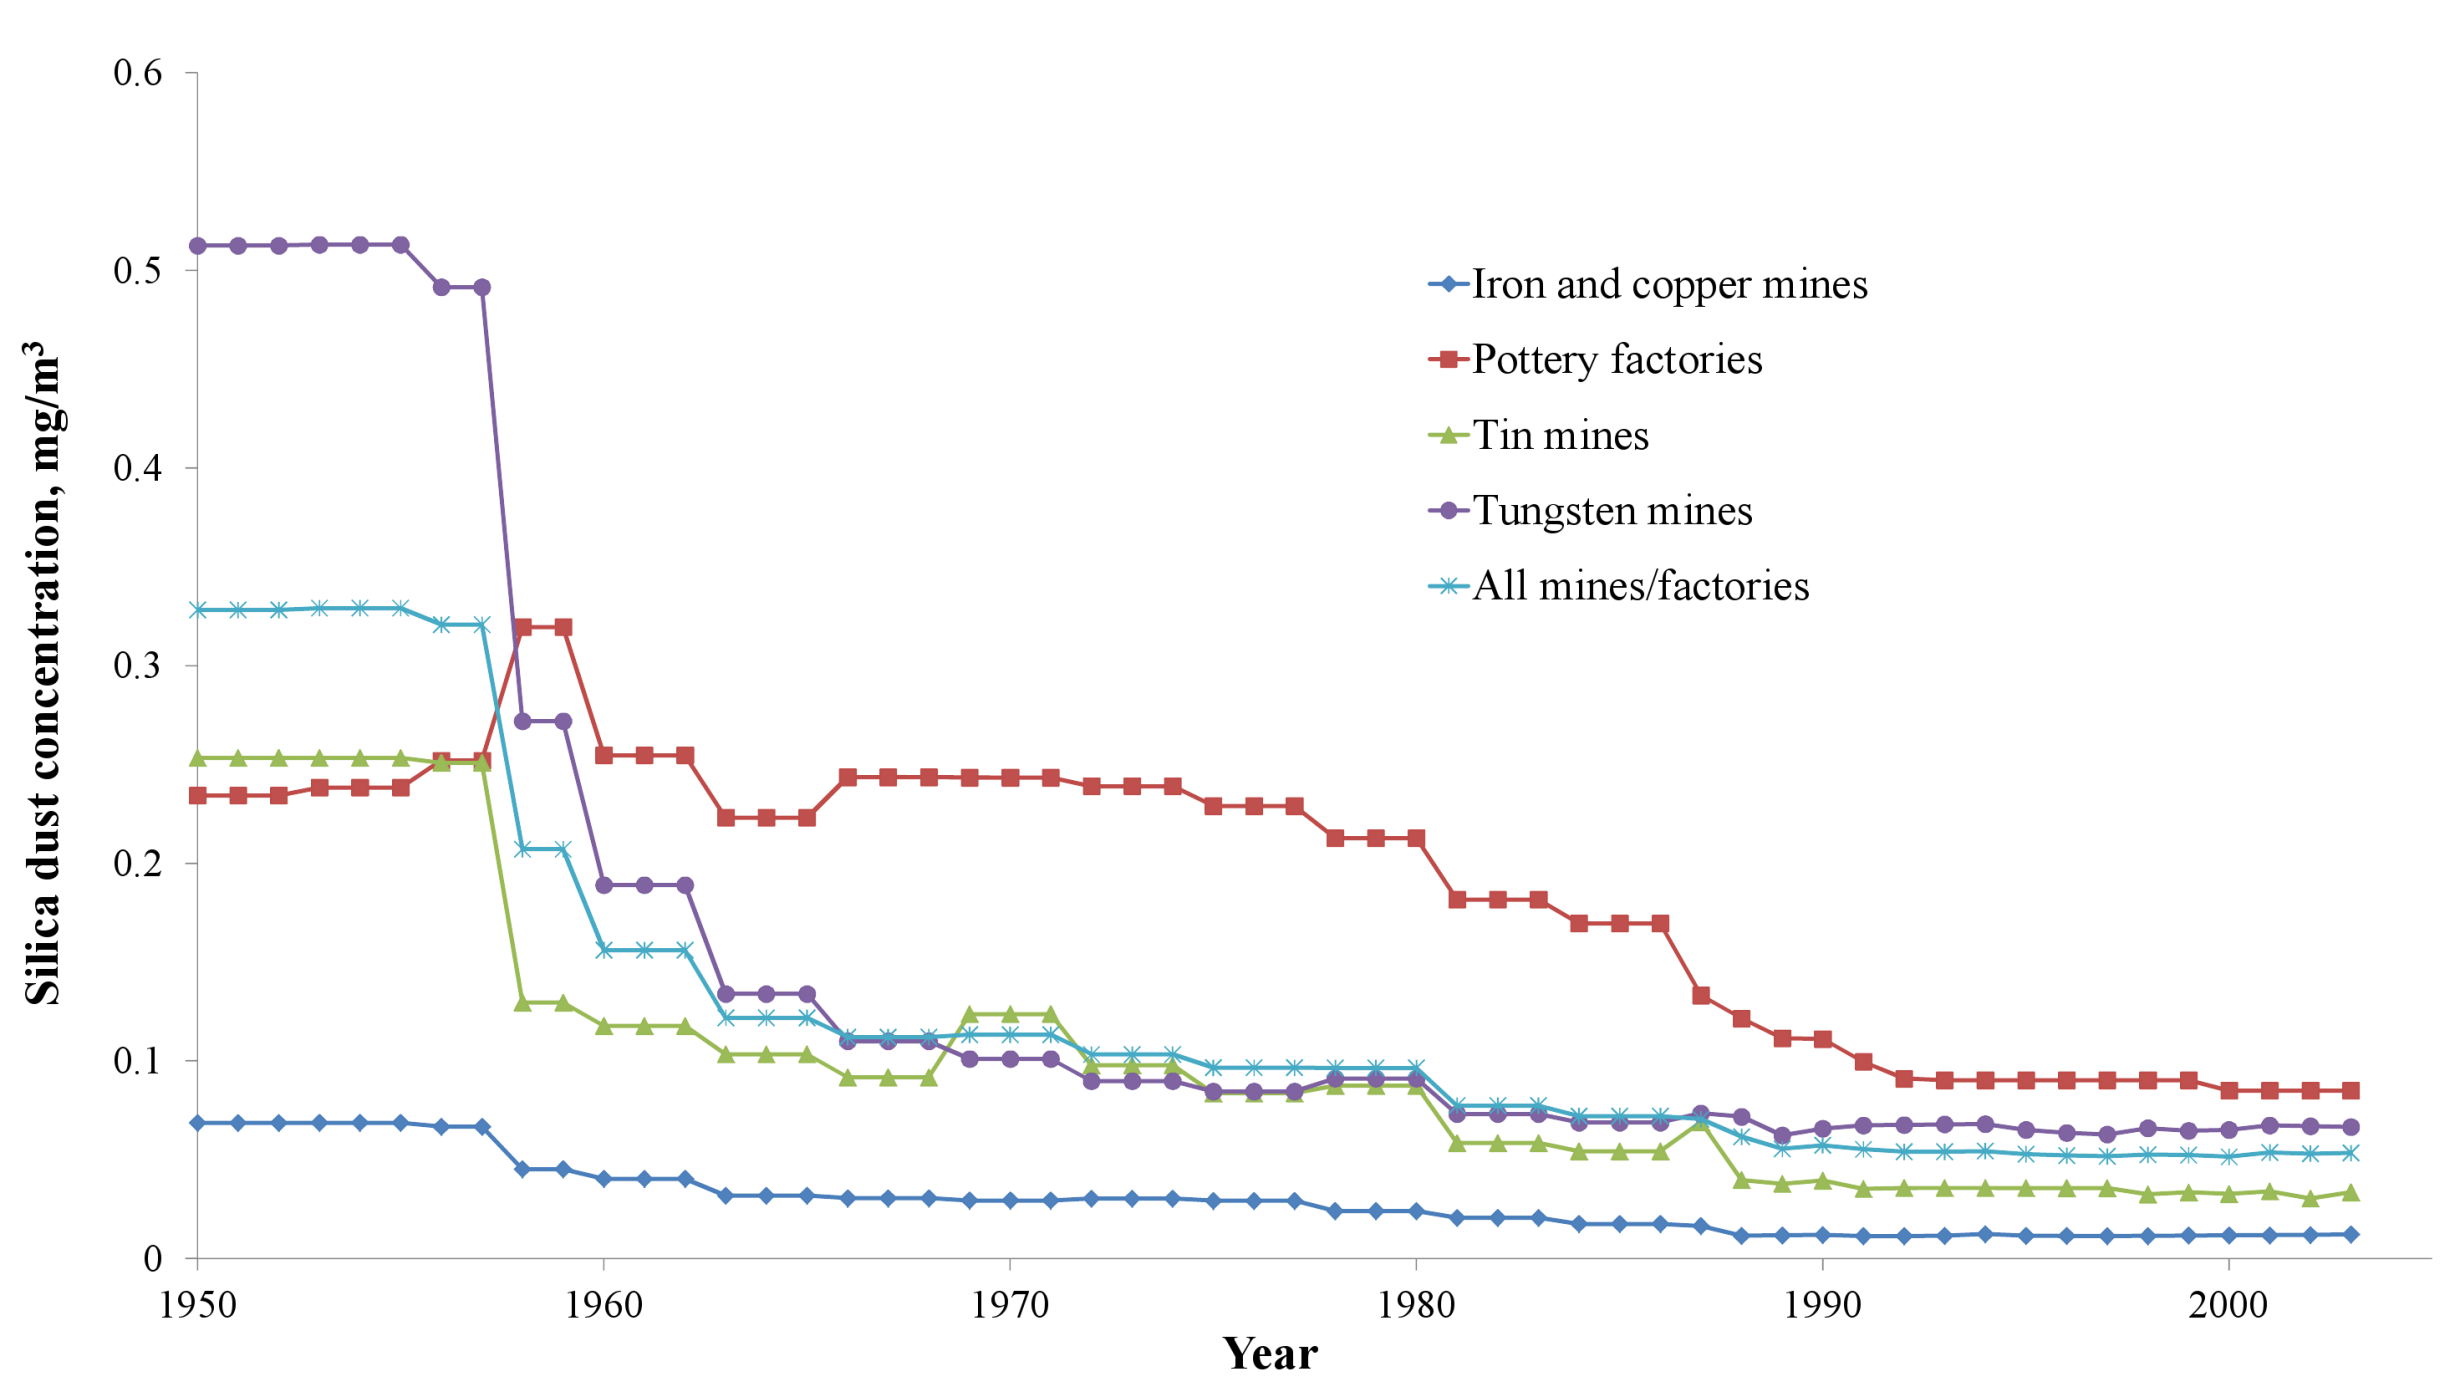 Annual silica dust concentrations, average of all job titles in different mines/factories in China, 1950–2003.